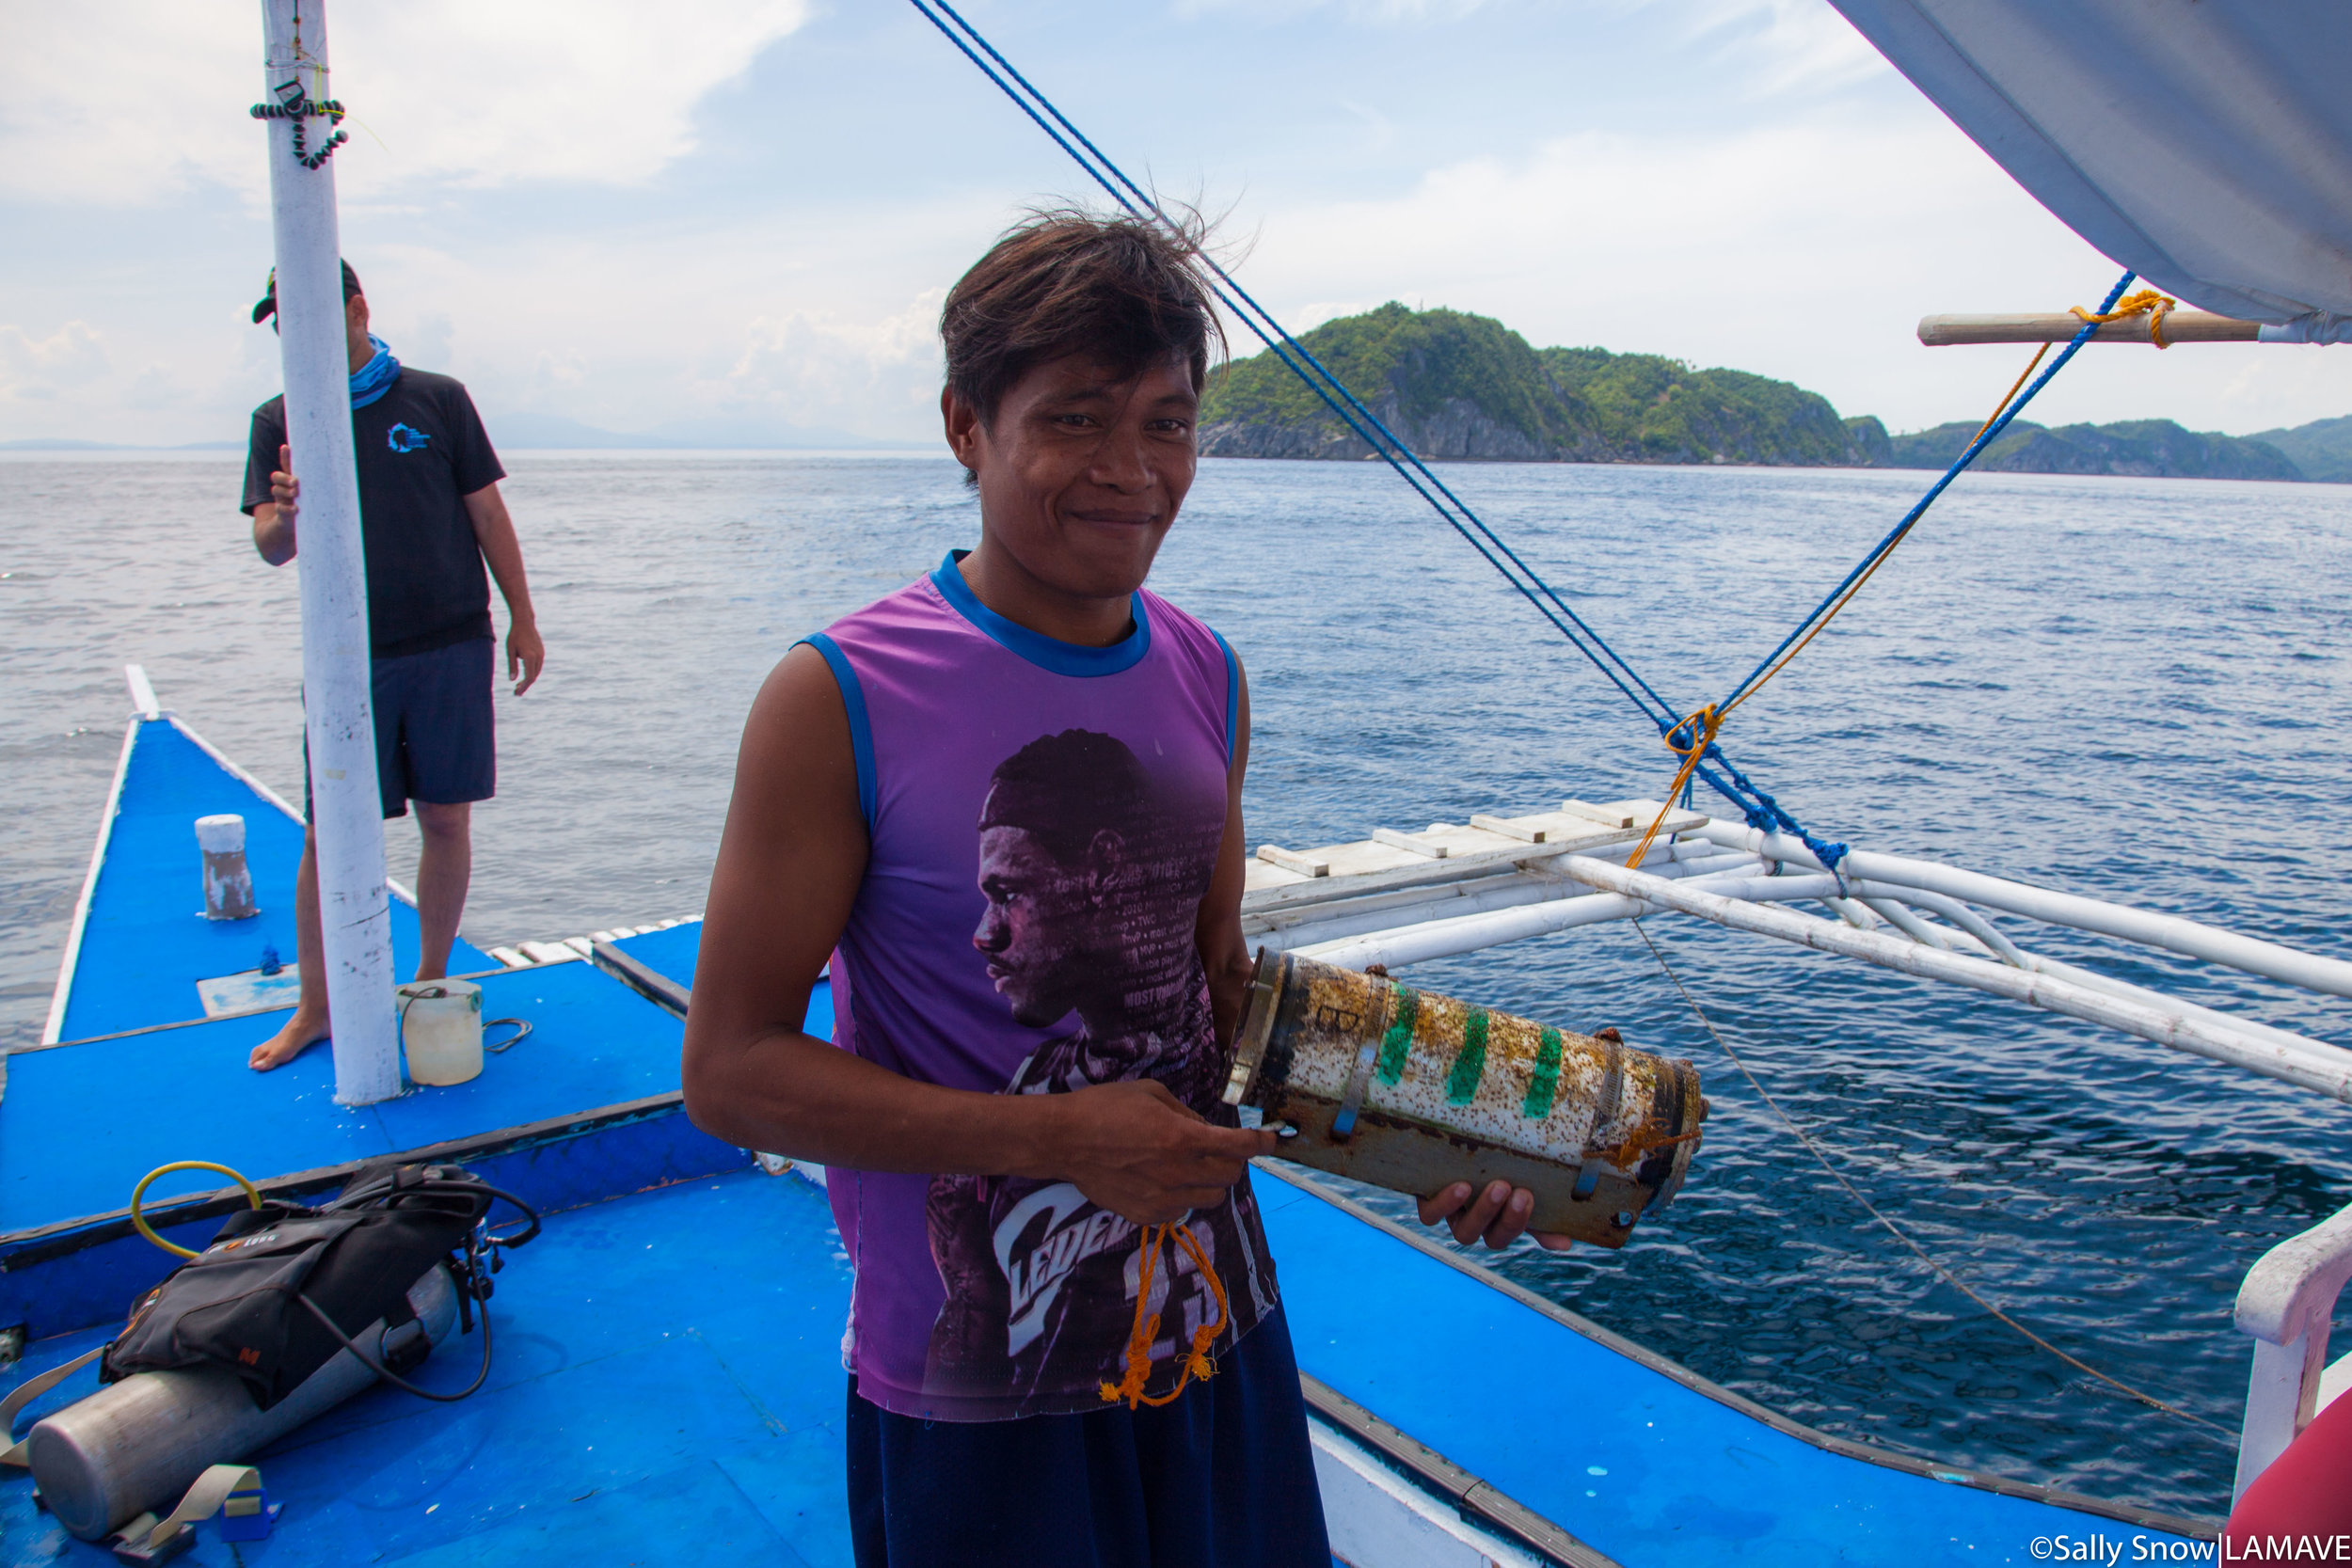 Junar Almincion from Ticao Island Resort helps the team reset and prepare the Remote Underwater Video System.